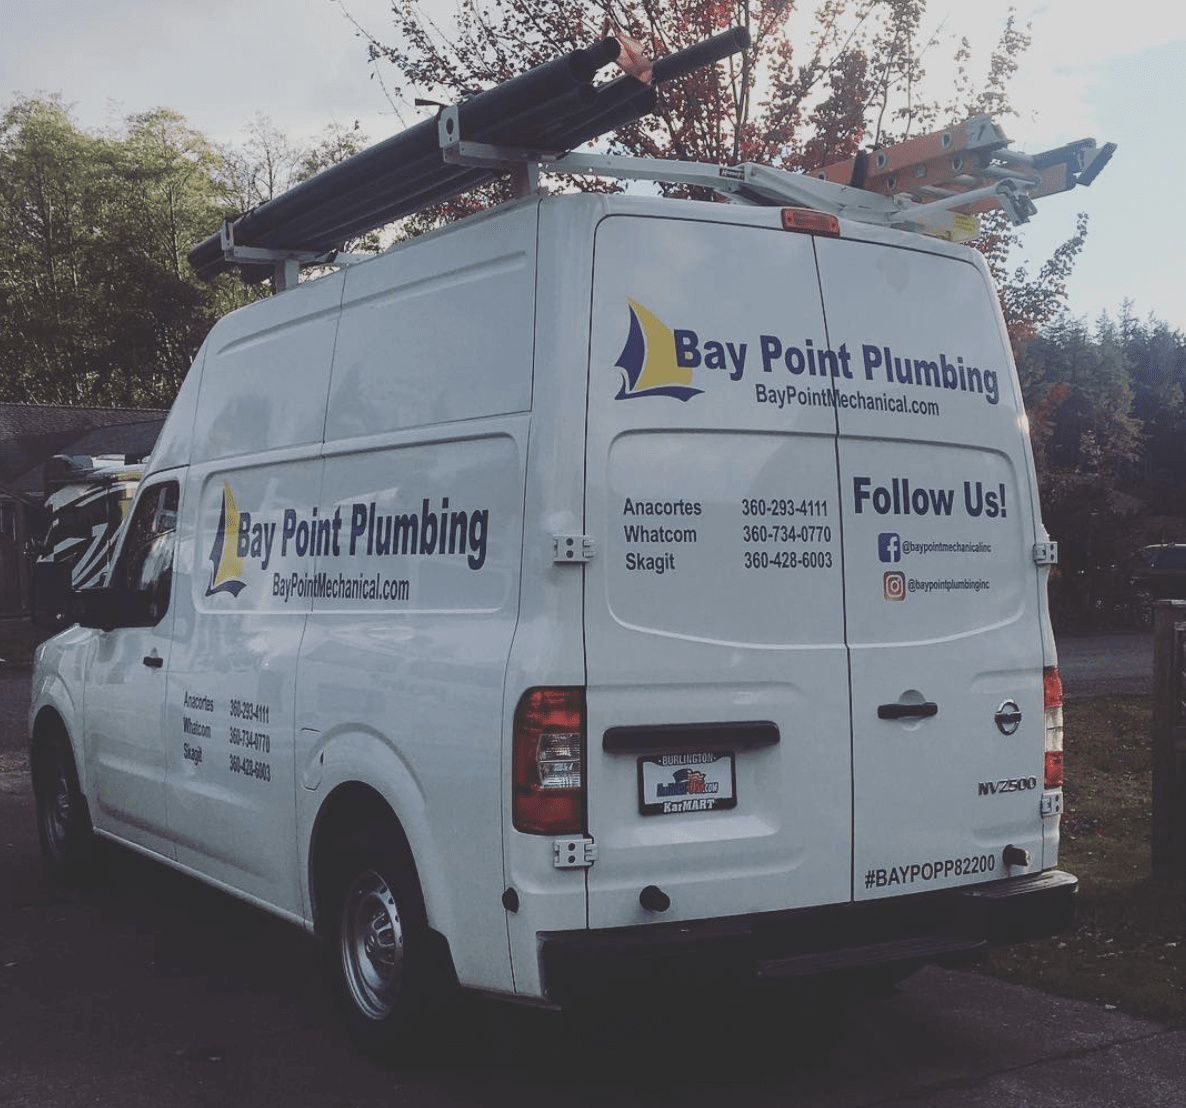 Bay Point Plumbing van